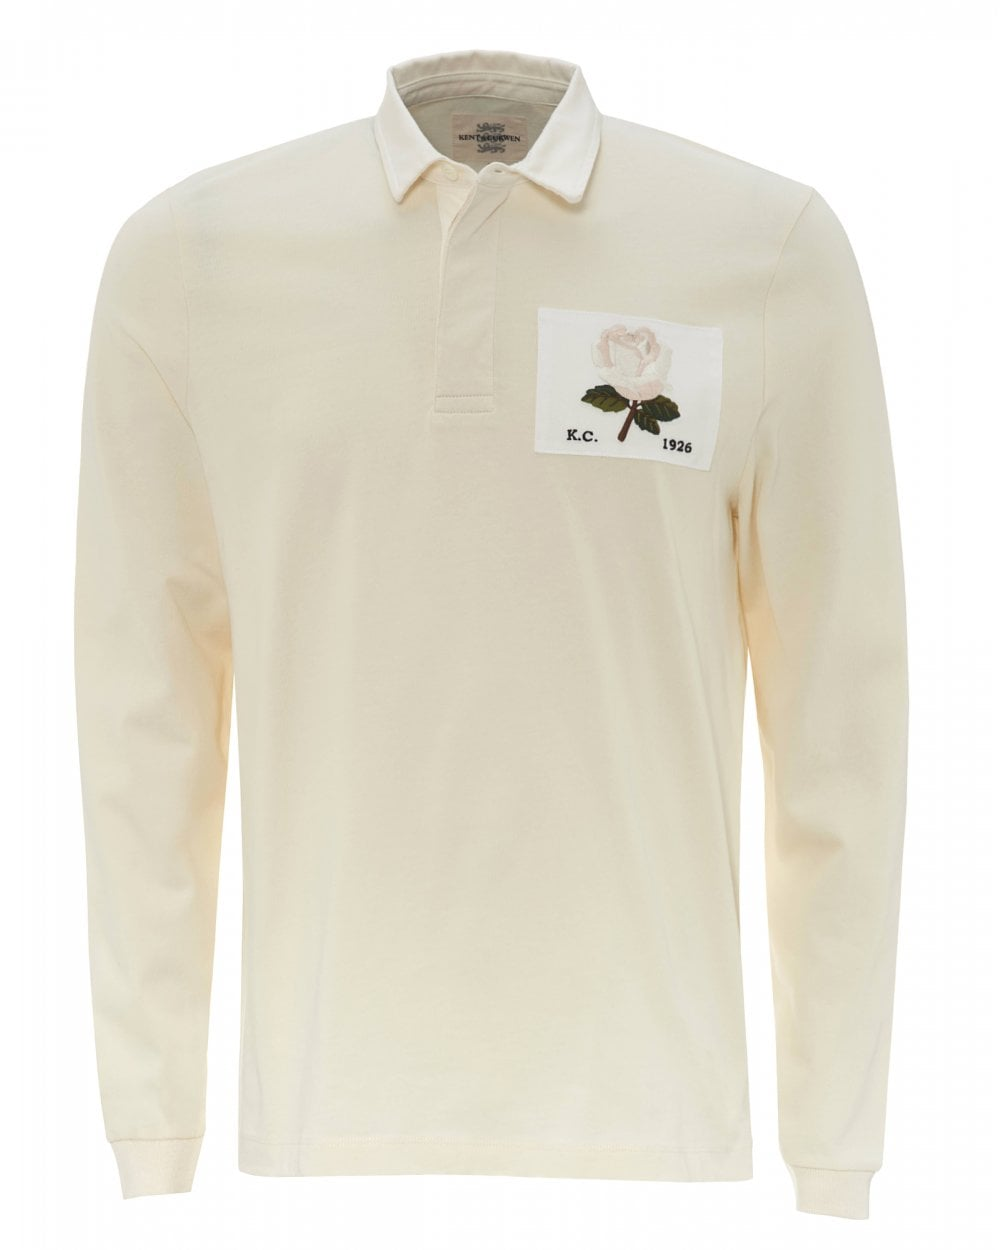 6bb56ac90 Kent & Curwen Mens Cream Rugby Rose Patch Polo Shirt